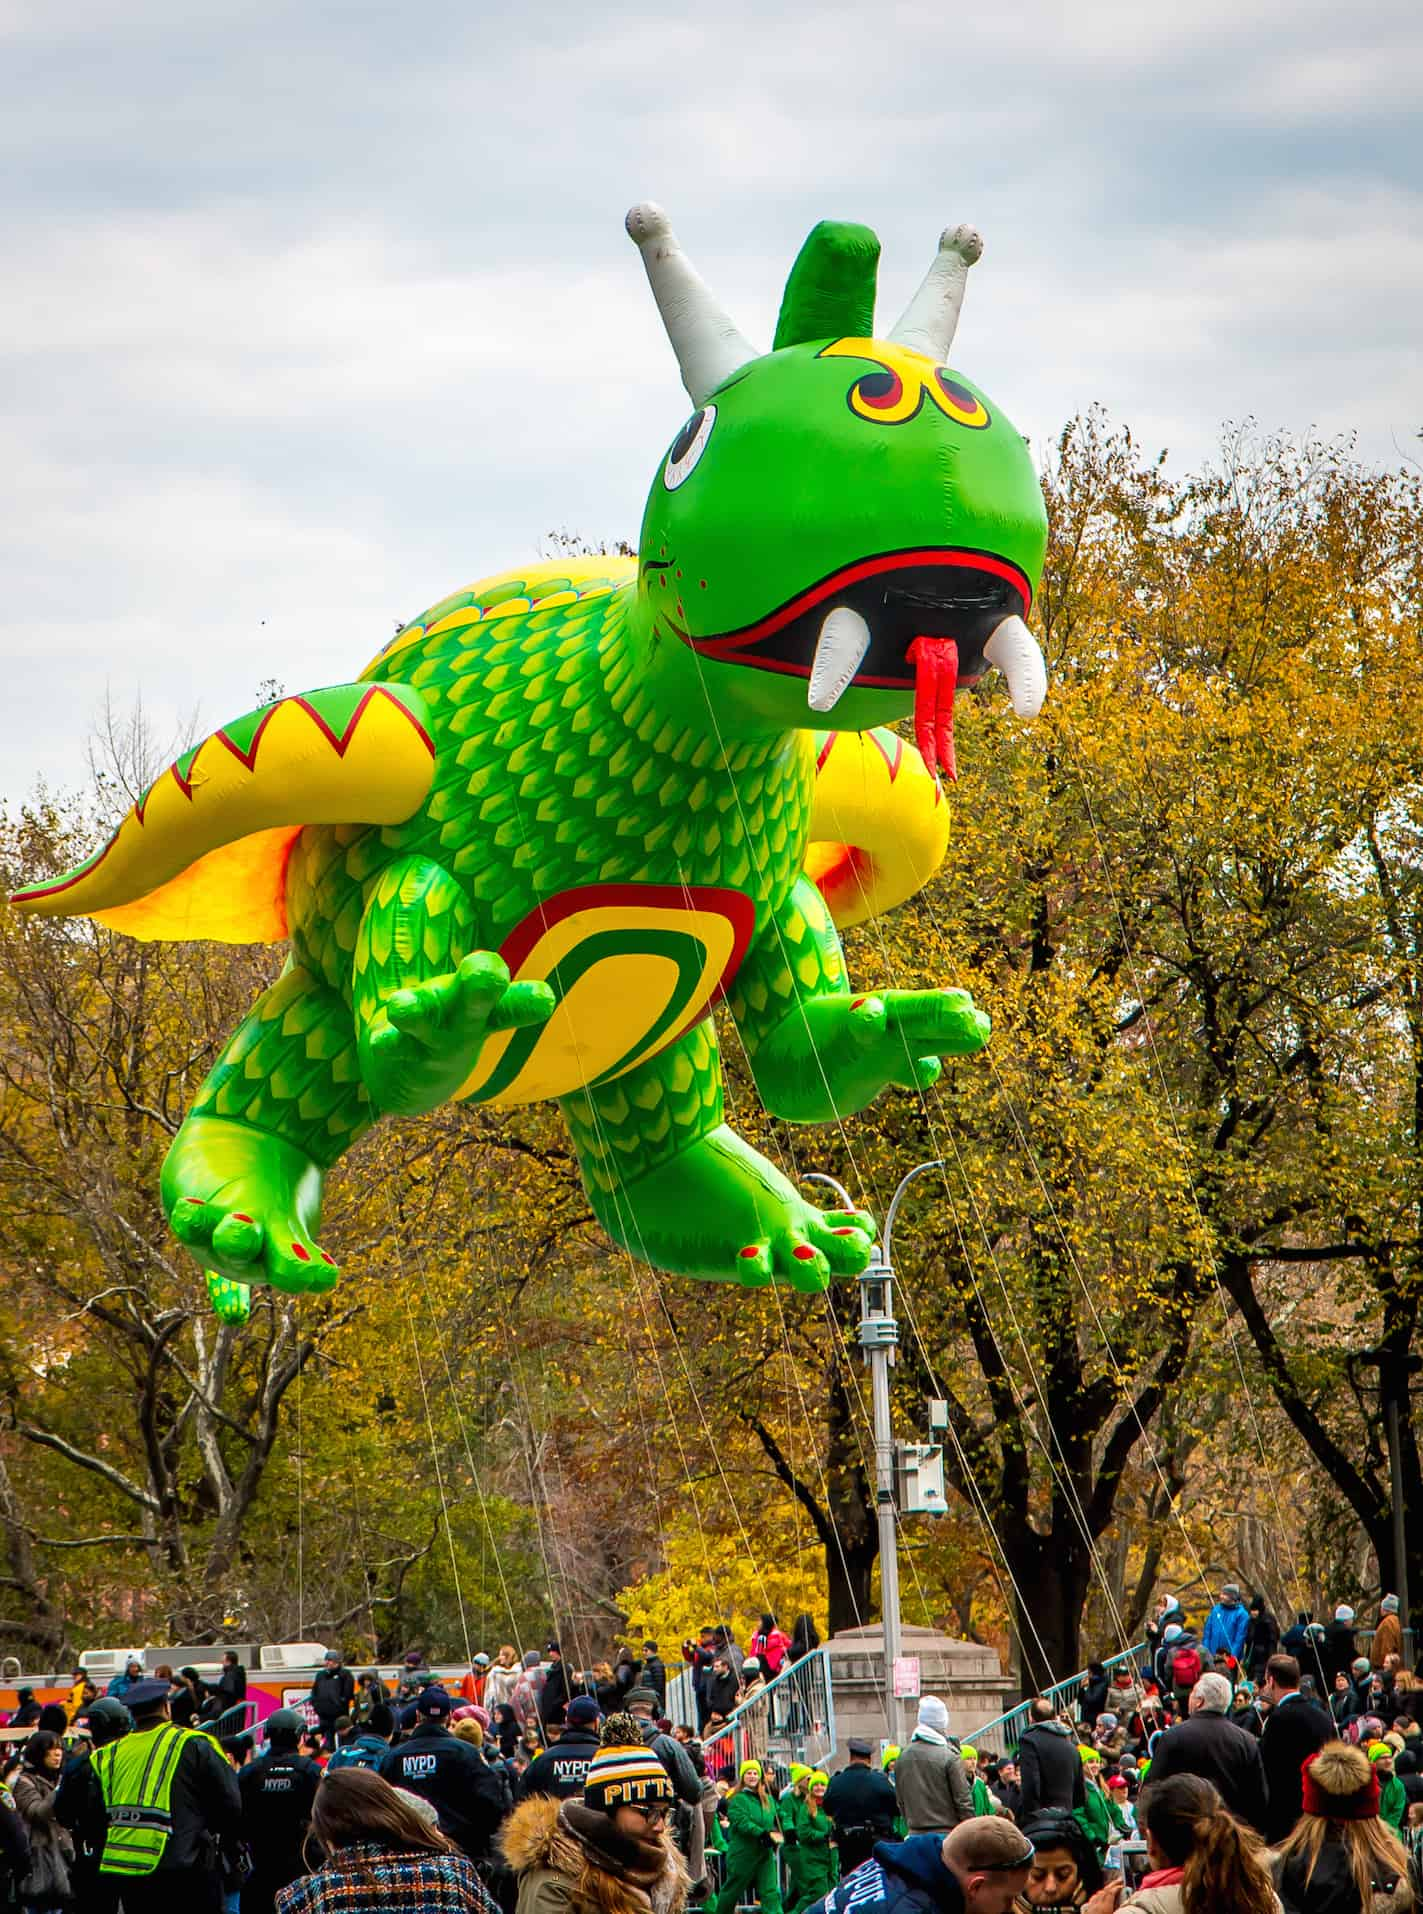 90th macy's thanksgiving day parade- Dragon